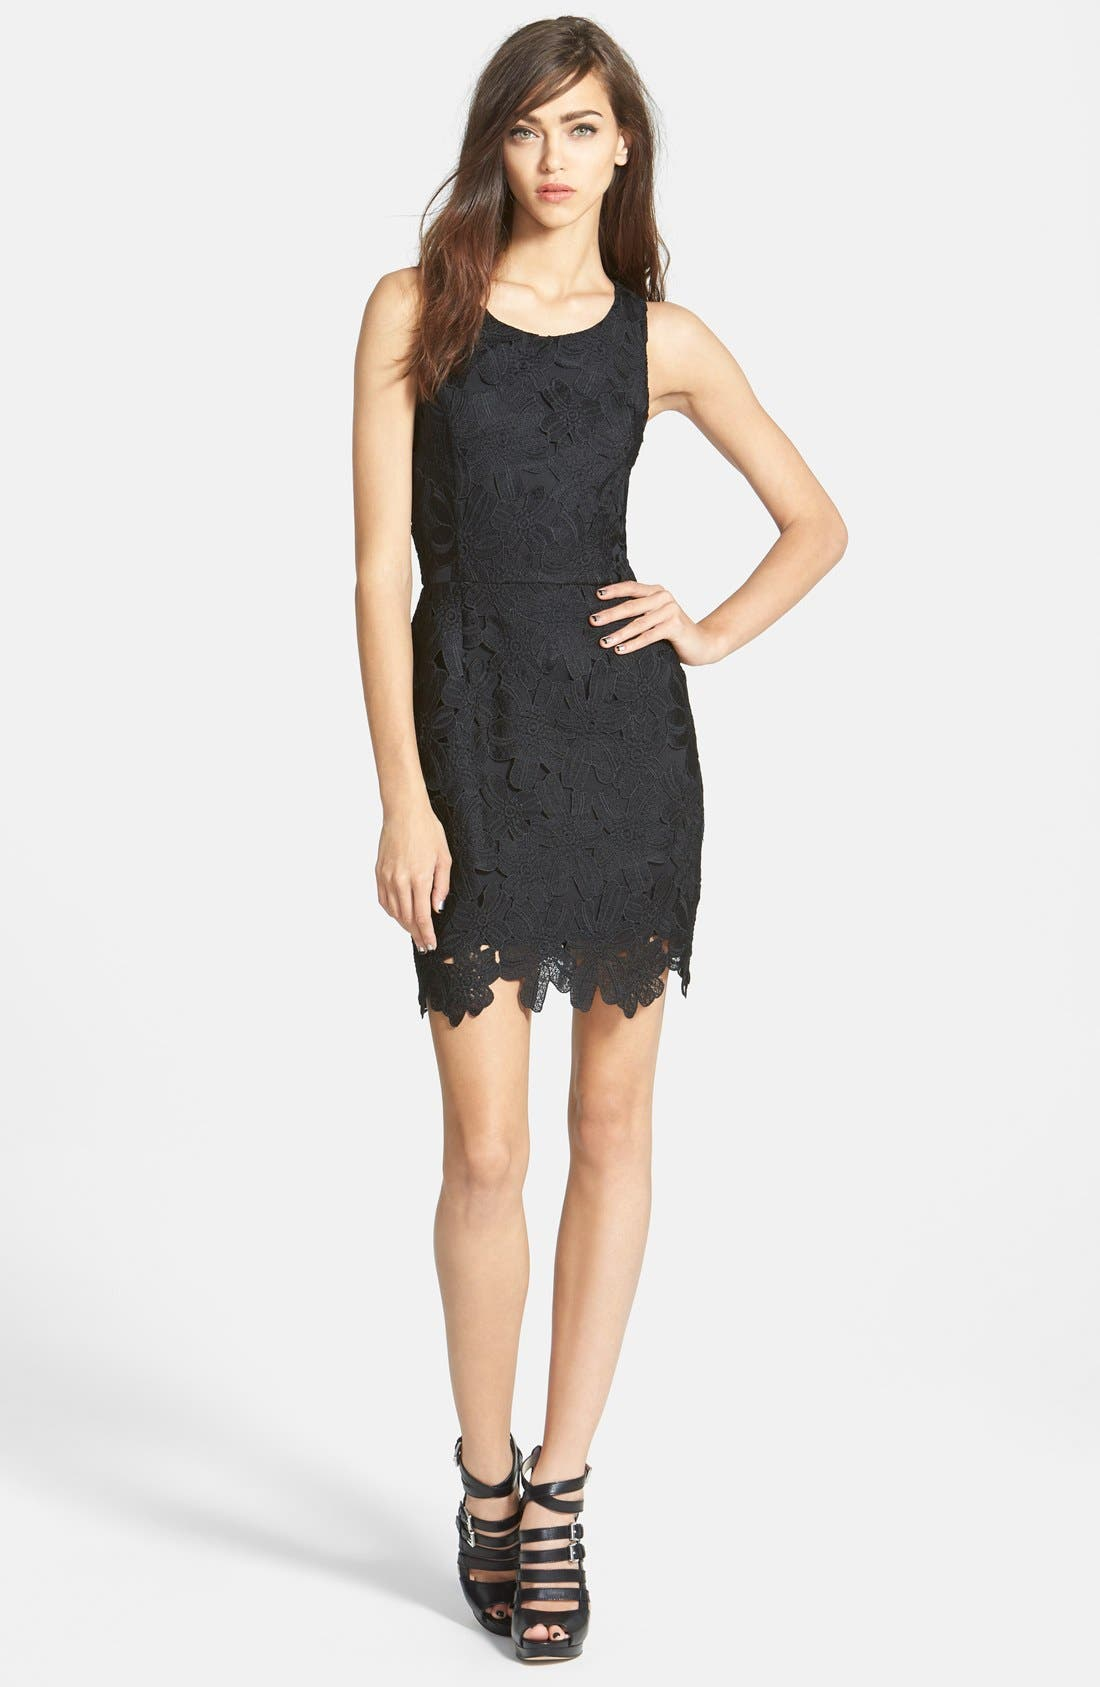 ASTR THE LABEL Textured Floral Body-Con Dress, Main, color, 001